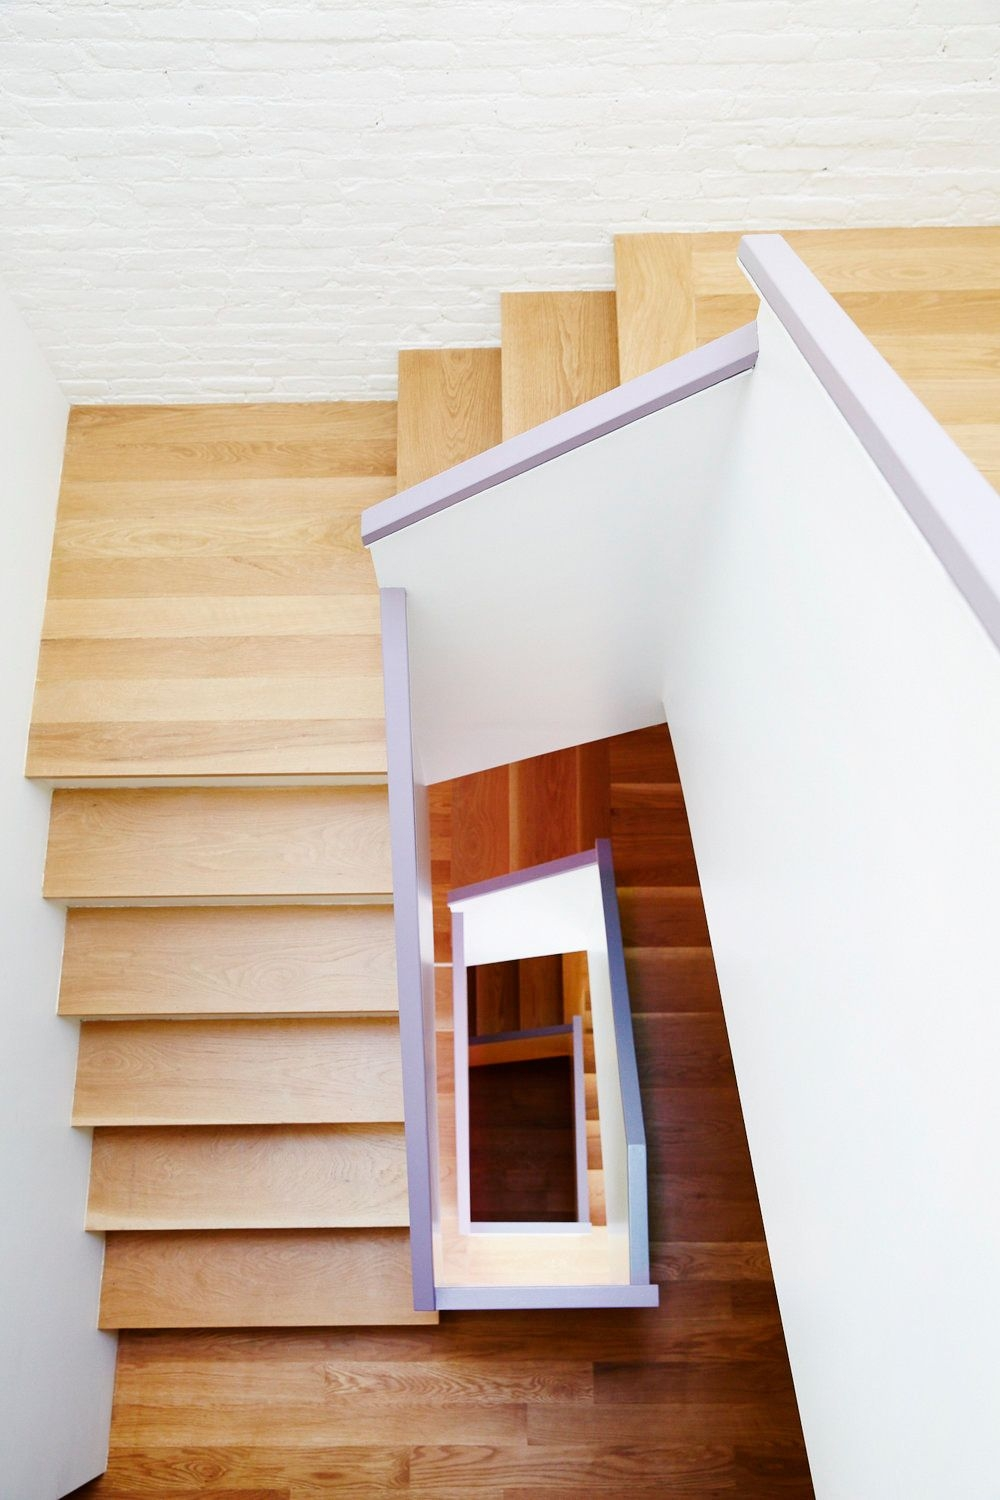 25 Unique Stair Designs Beautiful Stair Ideas For Your House | Steps Design Inside Home | Beautiful | Wooden | Ultra Modern | Sala | Behind Duplex